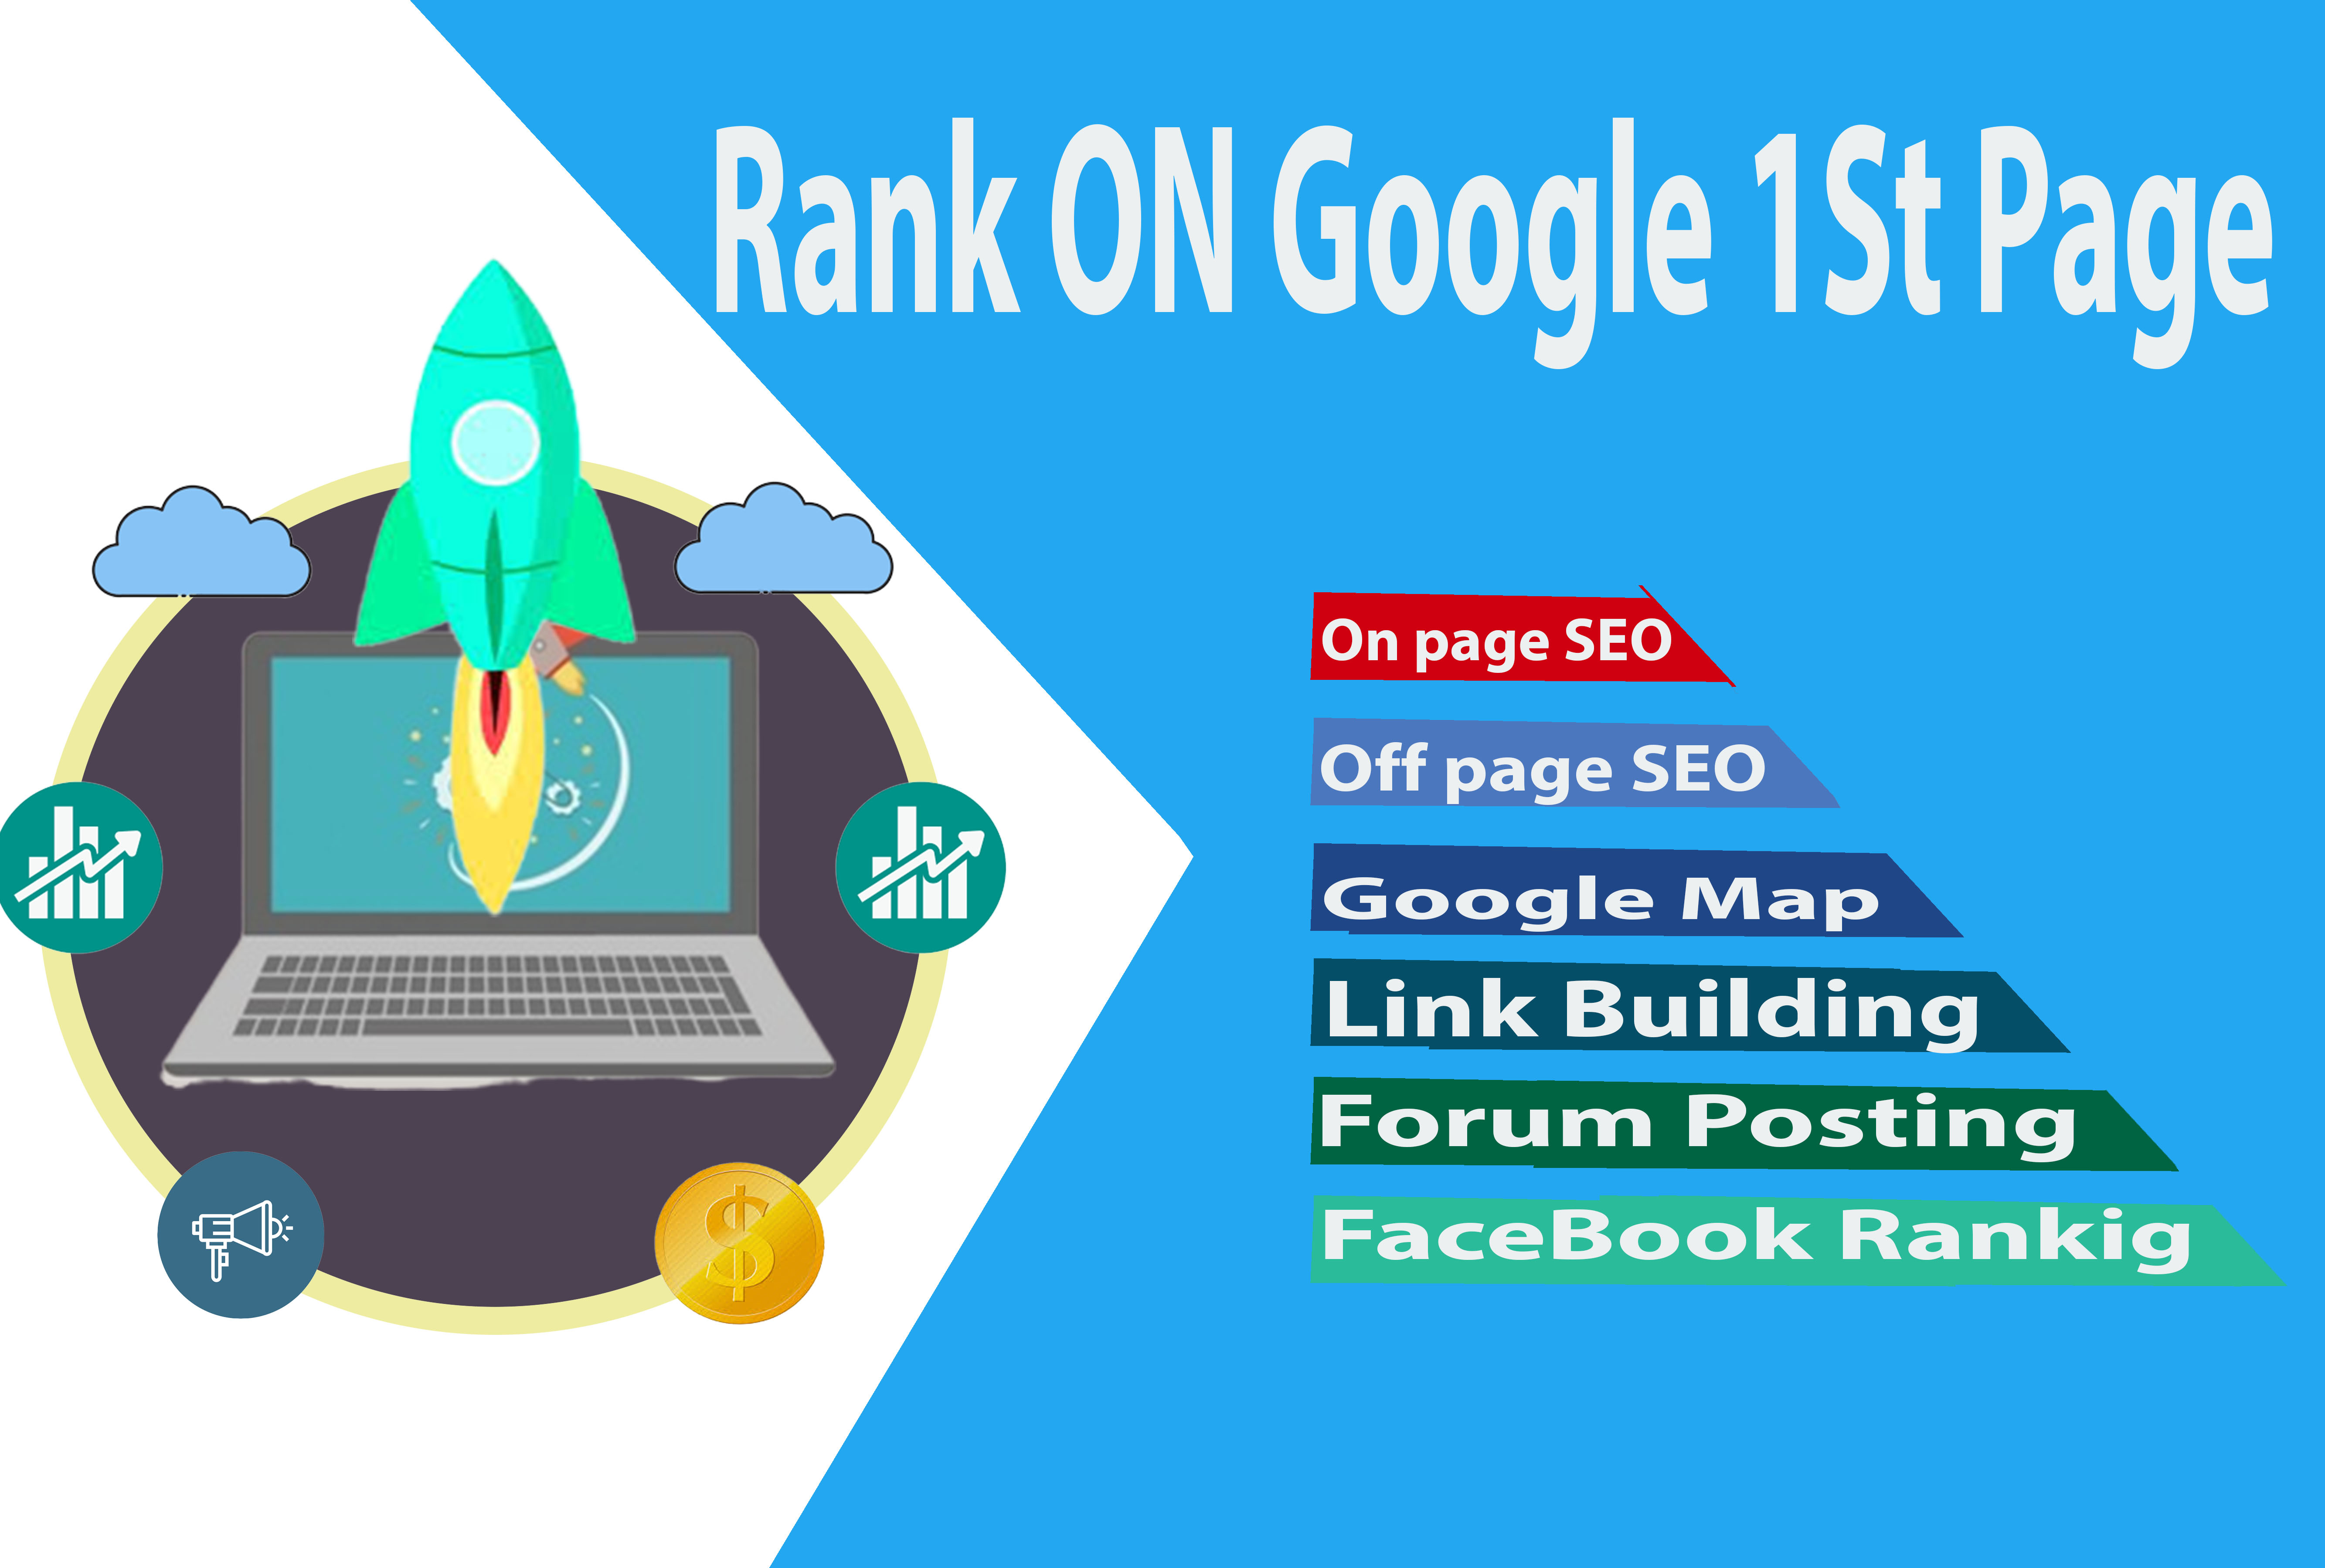 Google 1st Page ranking your website with white hat SEO